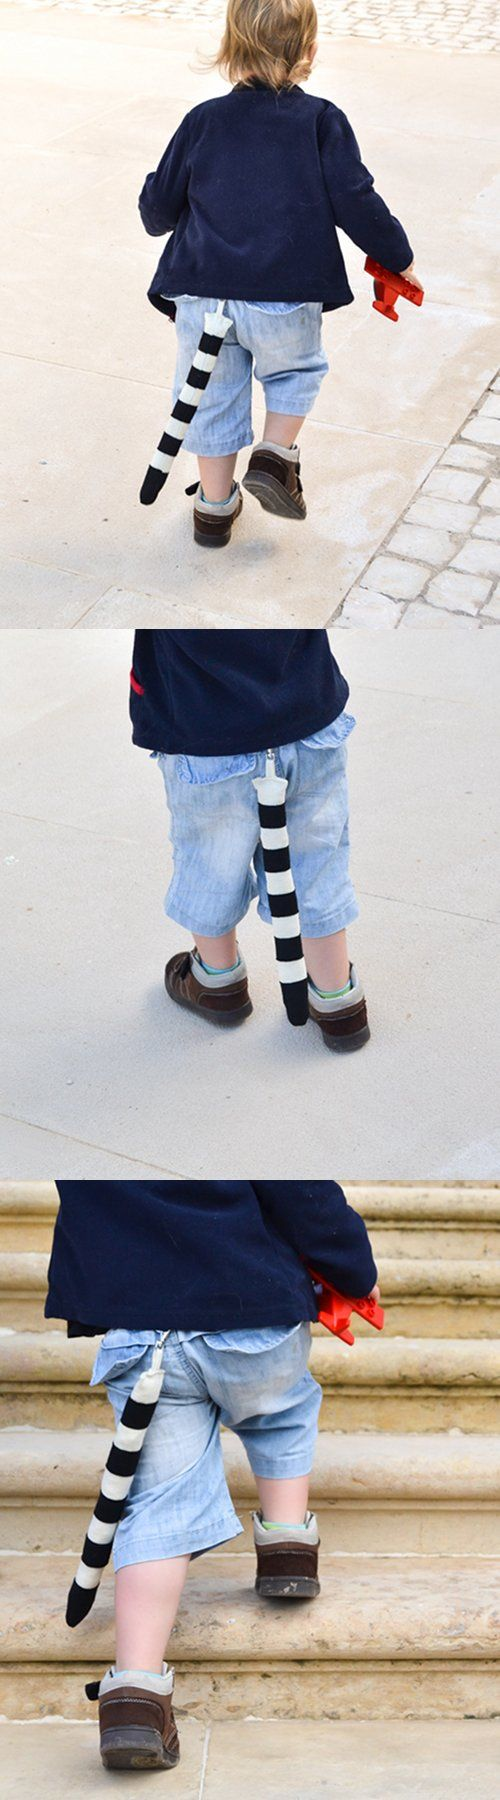 Stripy dress up tail. Halloween or Carnival costume accessory for kids to dress up like a ringed tail lemur, dog, cat or just an imagined creature. Excellent soft toy for imaginative play. | BHB Kidstyle